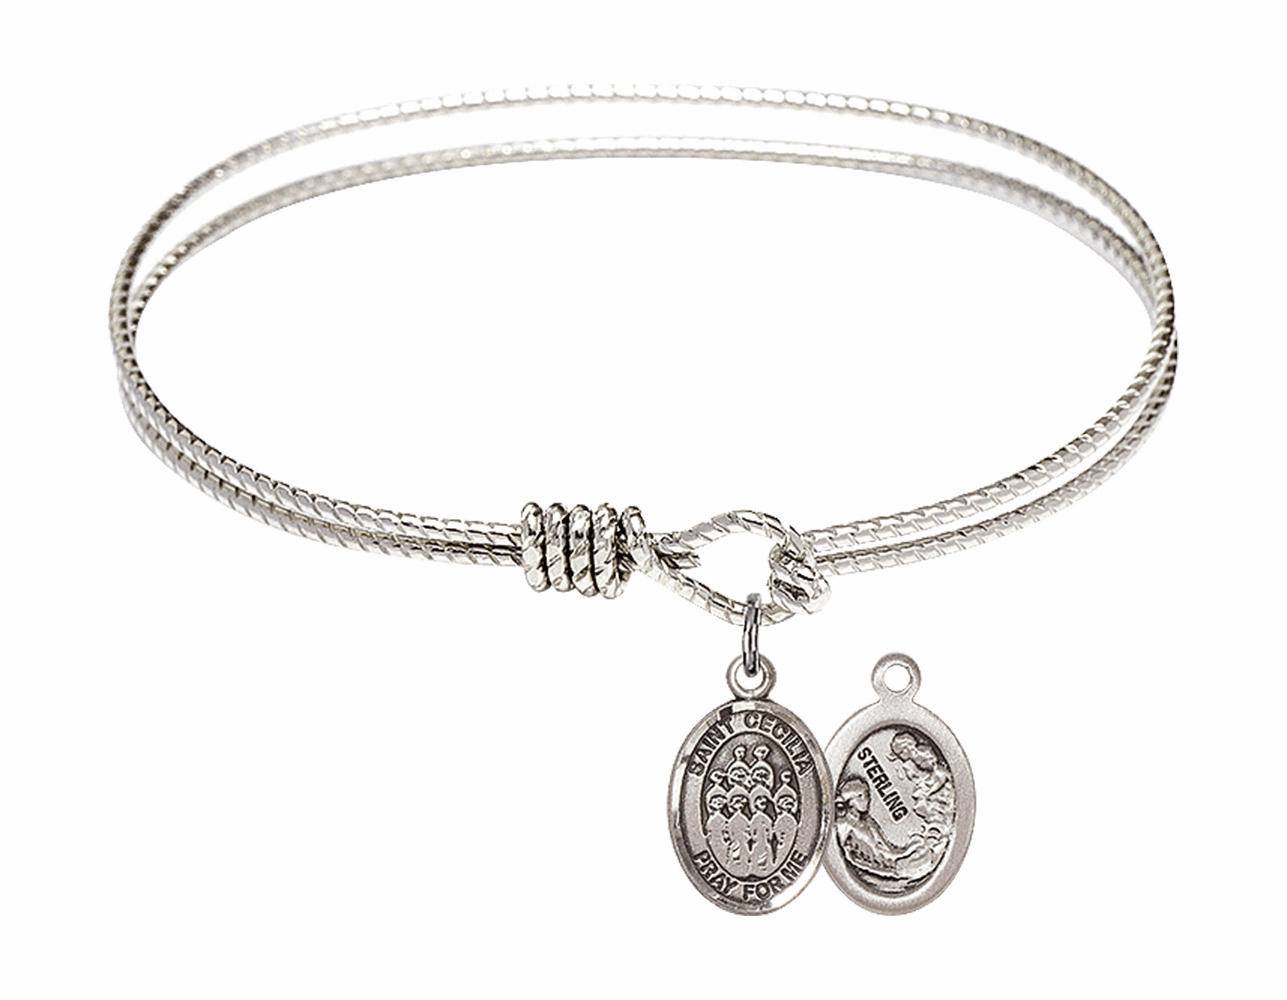 Twist Round Eye Hook St Cecilia Choir Bangle Charm Bracelet by Bliss